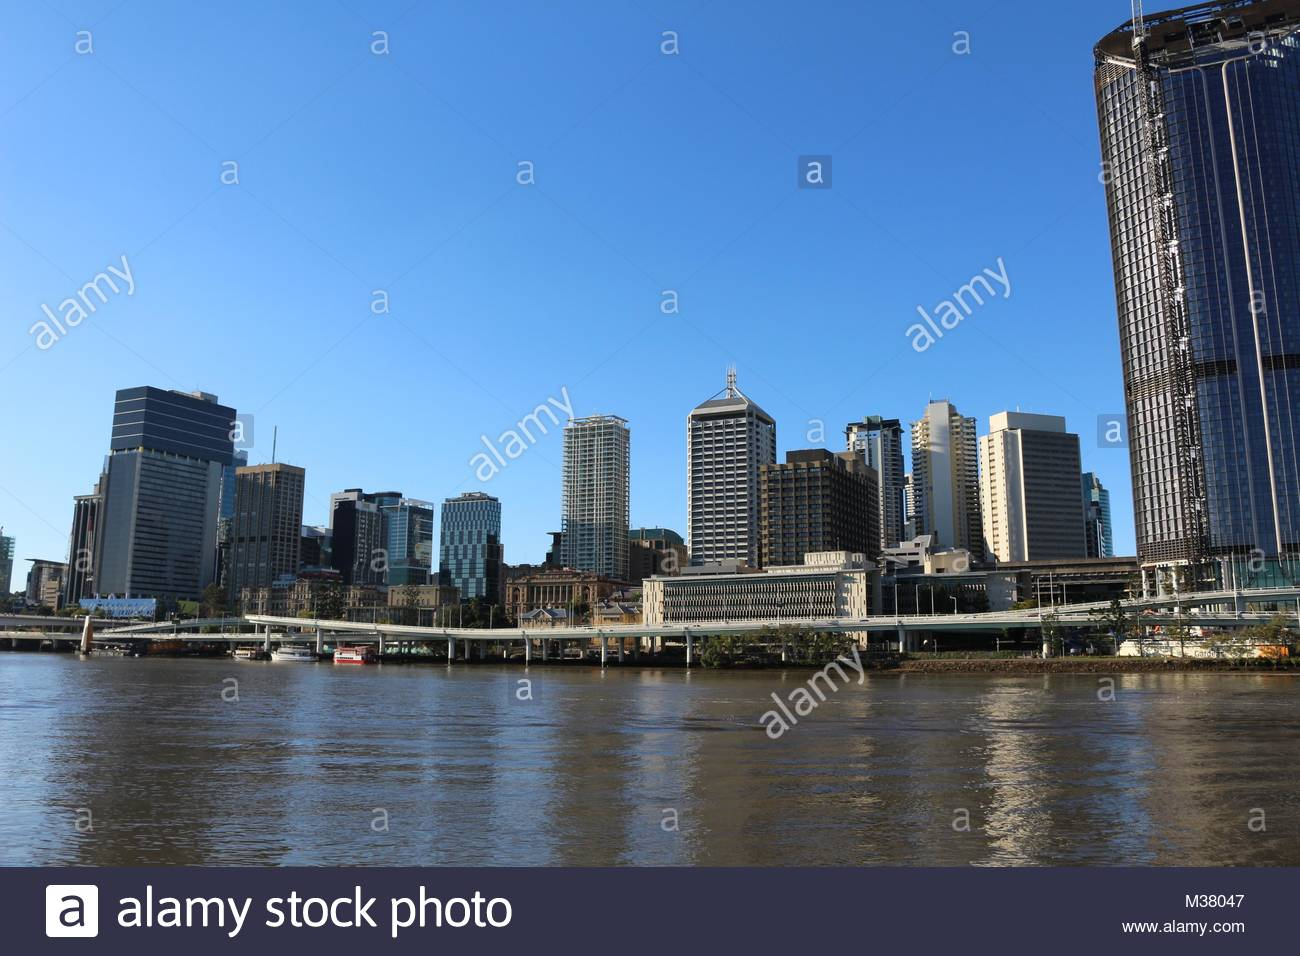 Cityscape with skyscrapers at the river in Brisbane, Australia - Stock Image